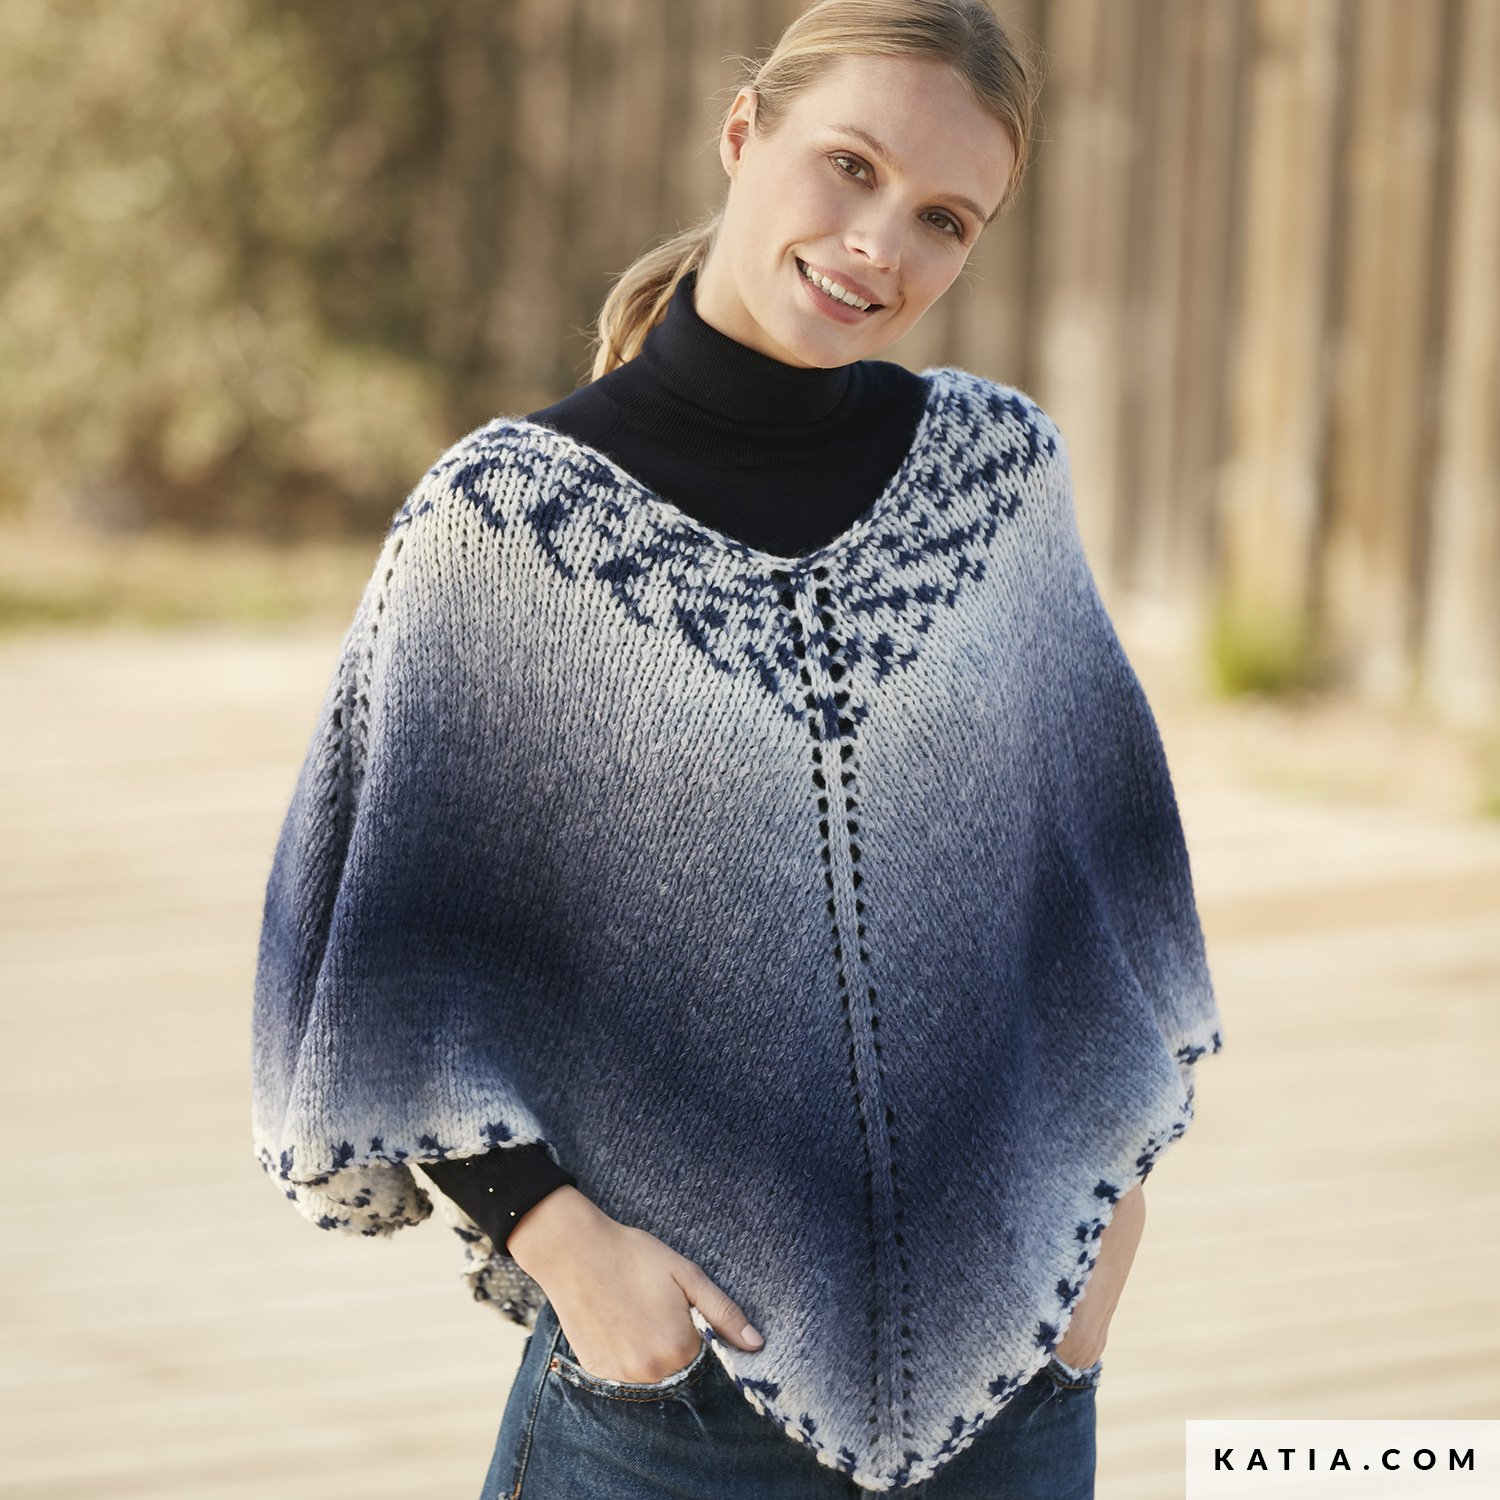 Poncho Pattern Knit Poncho Woman Autumn Winter Models Patterns Katia